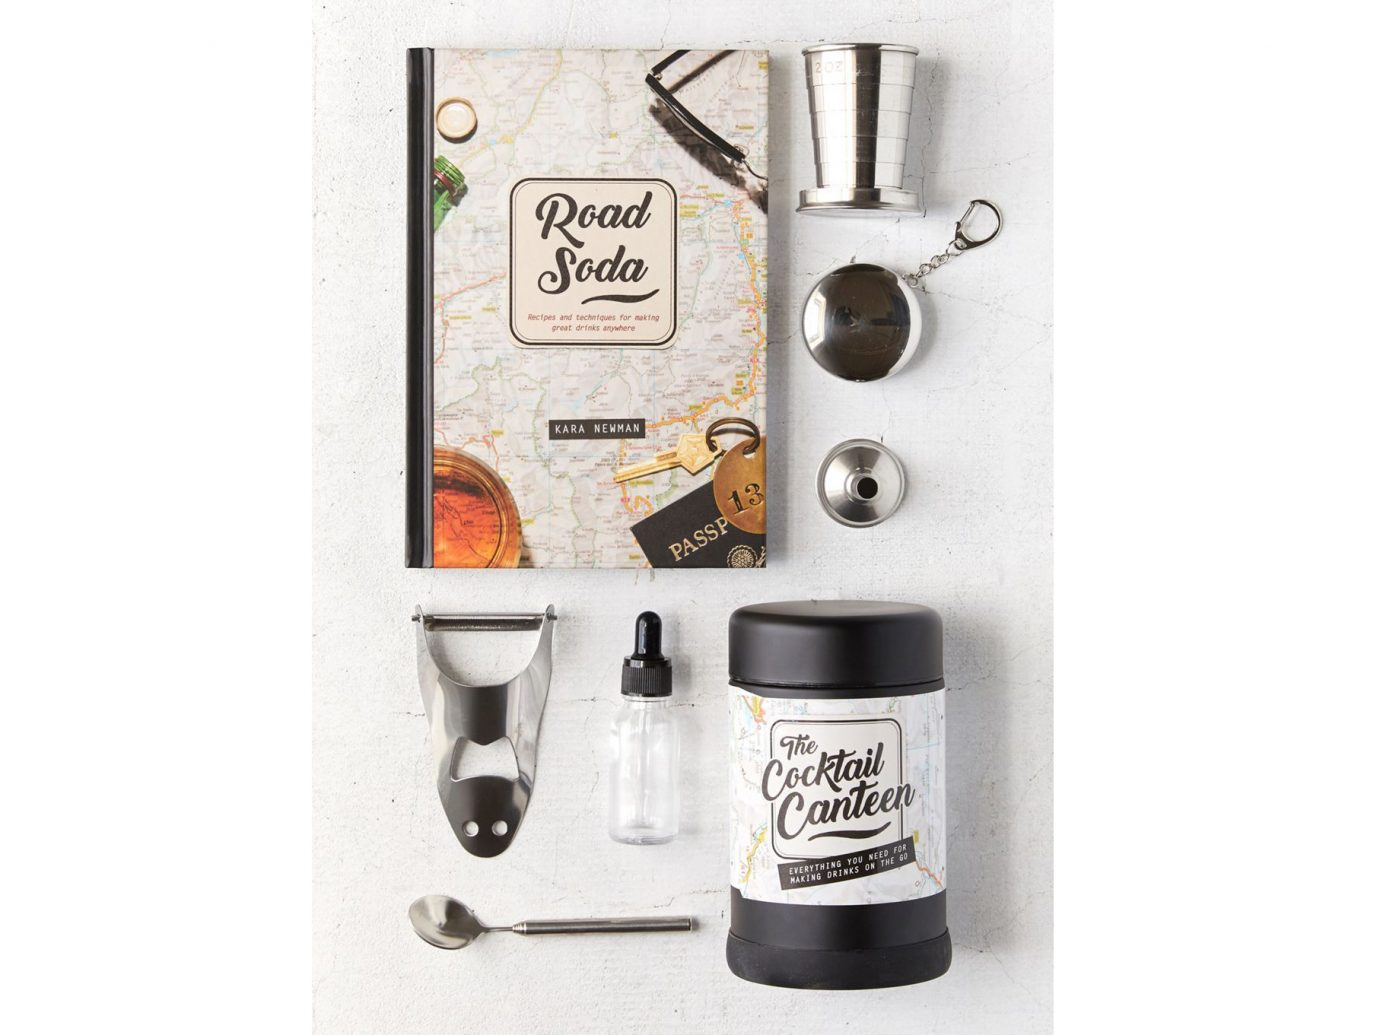 Road Soda Book + Cocktail Canteen Gift Set